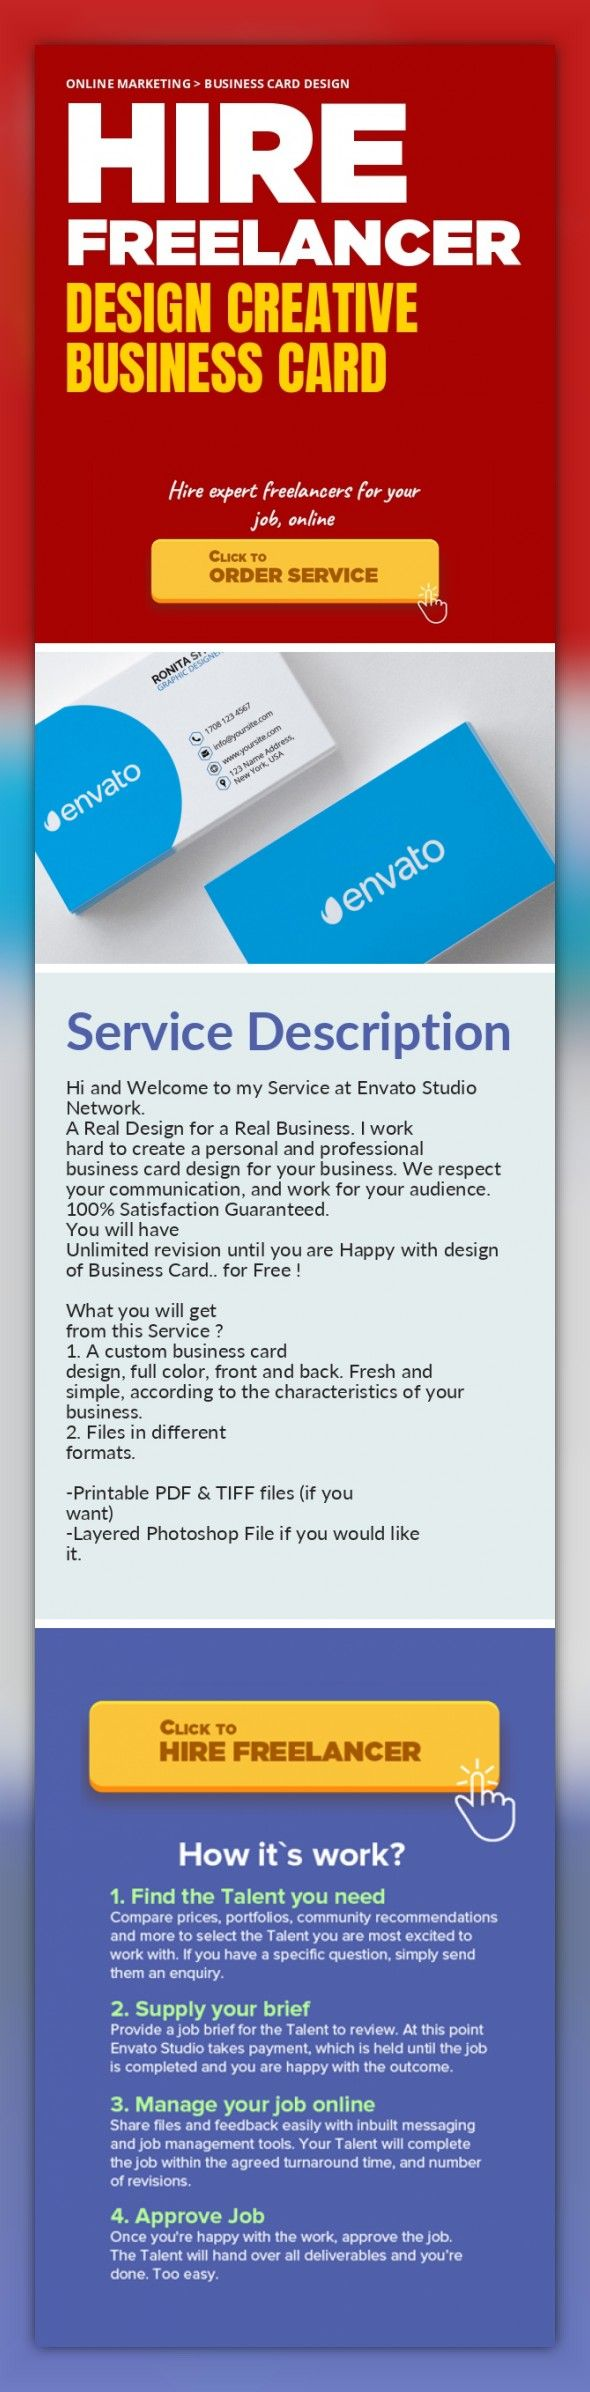 Design Creative Business Card Online Marketing, Business Card Design ...